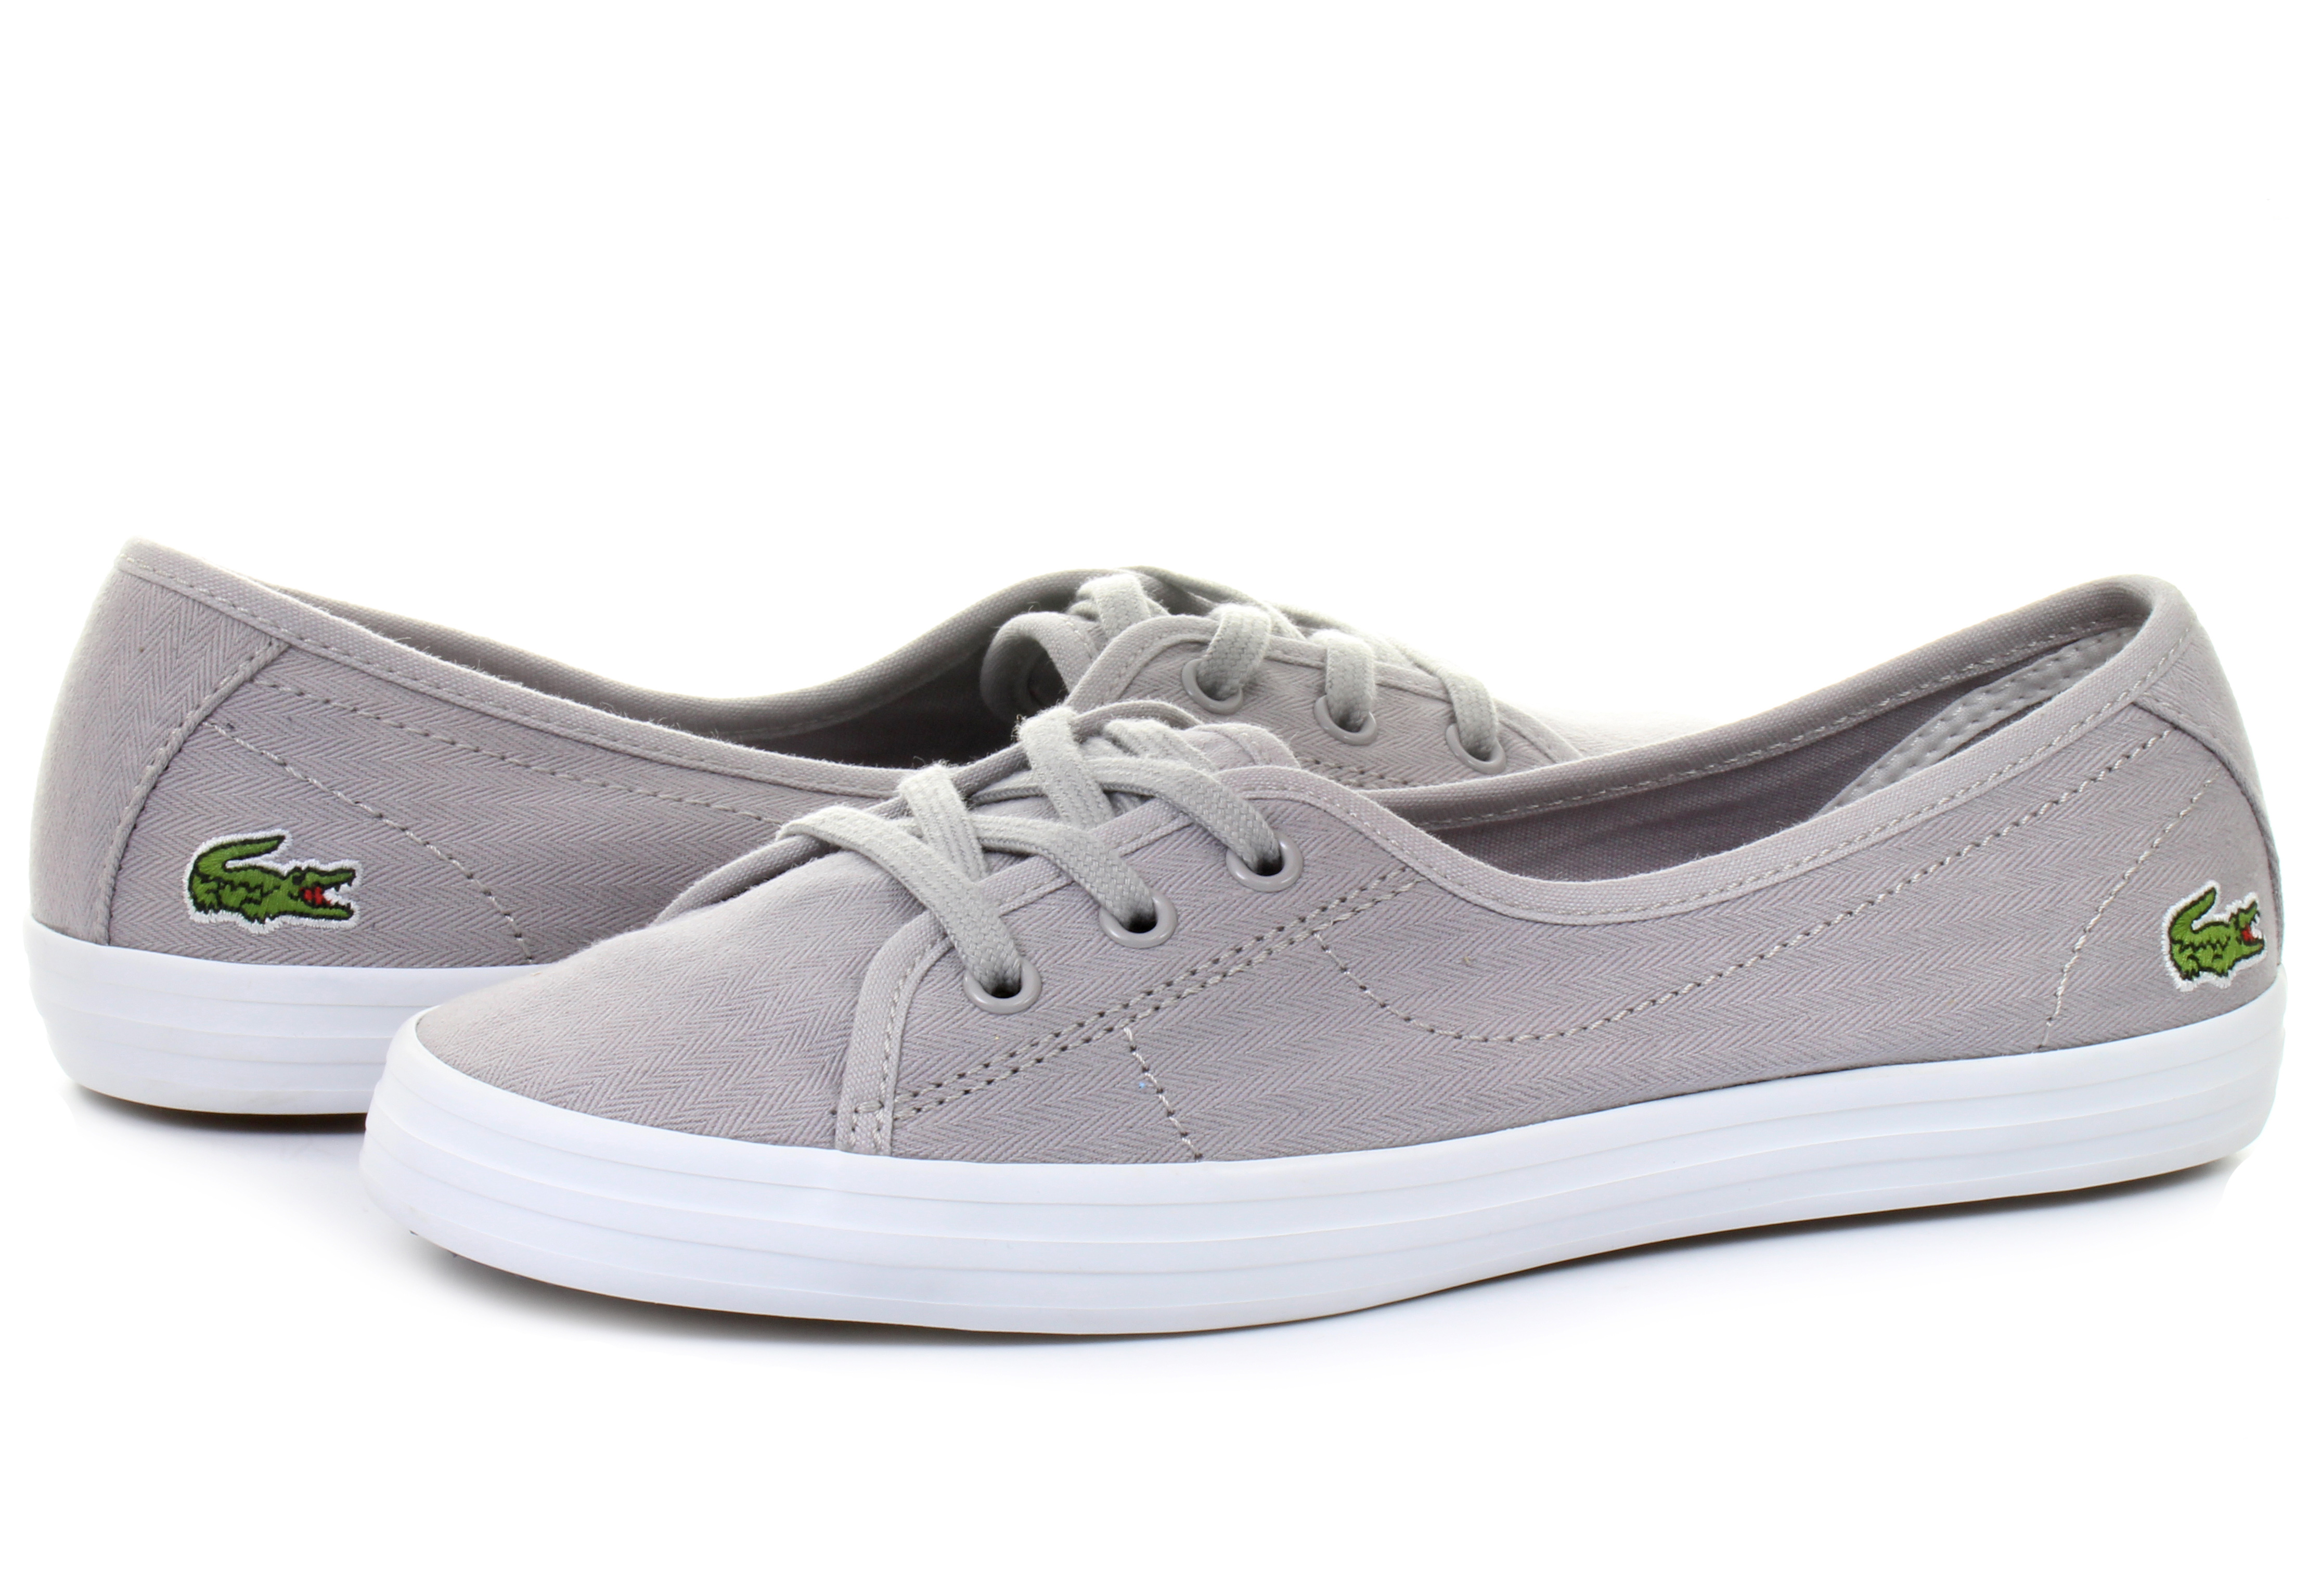 7f1f65d56c8 Lacoste Ballerinas - Ziane Chunky - 141spw0105-12c - Online shop ...